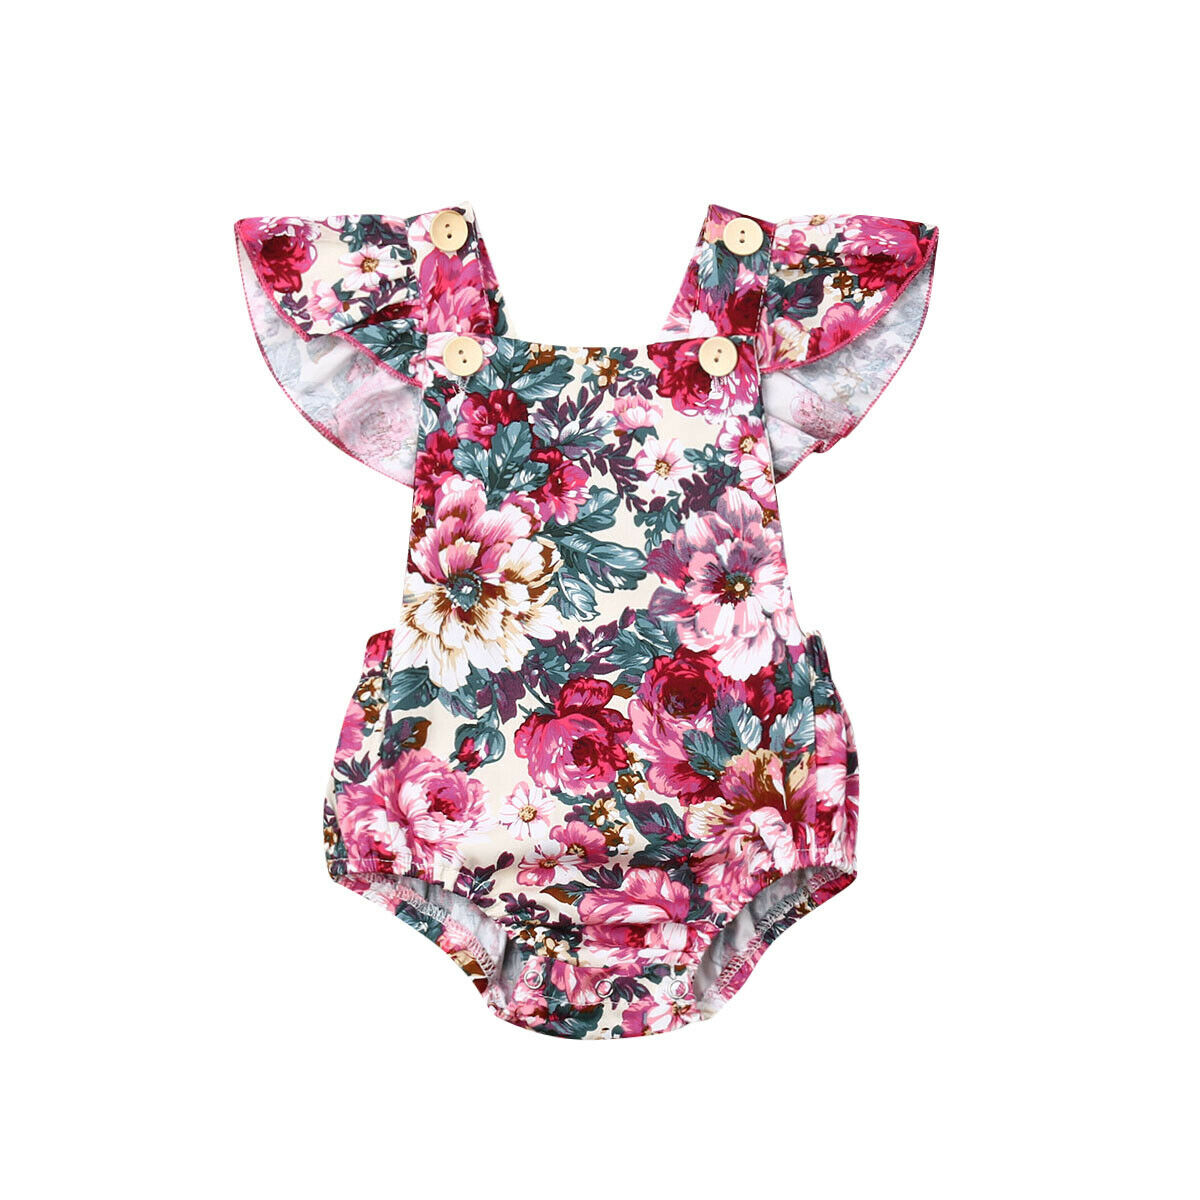 Newborn Infant Kid Baby Girl Bodysuit Ruffles Short Sleeve Flowers Print Jumpsuit Outfit Sunsuit Clothes(China)